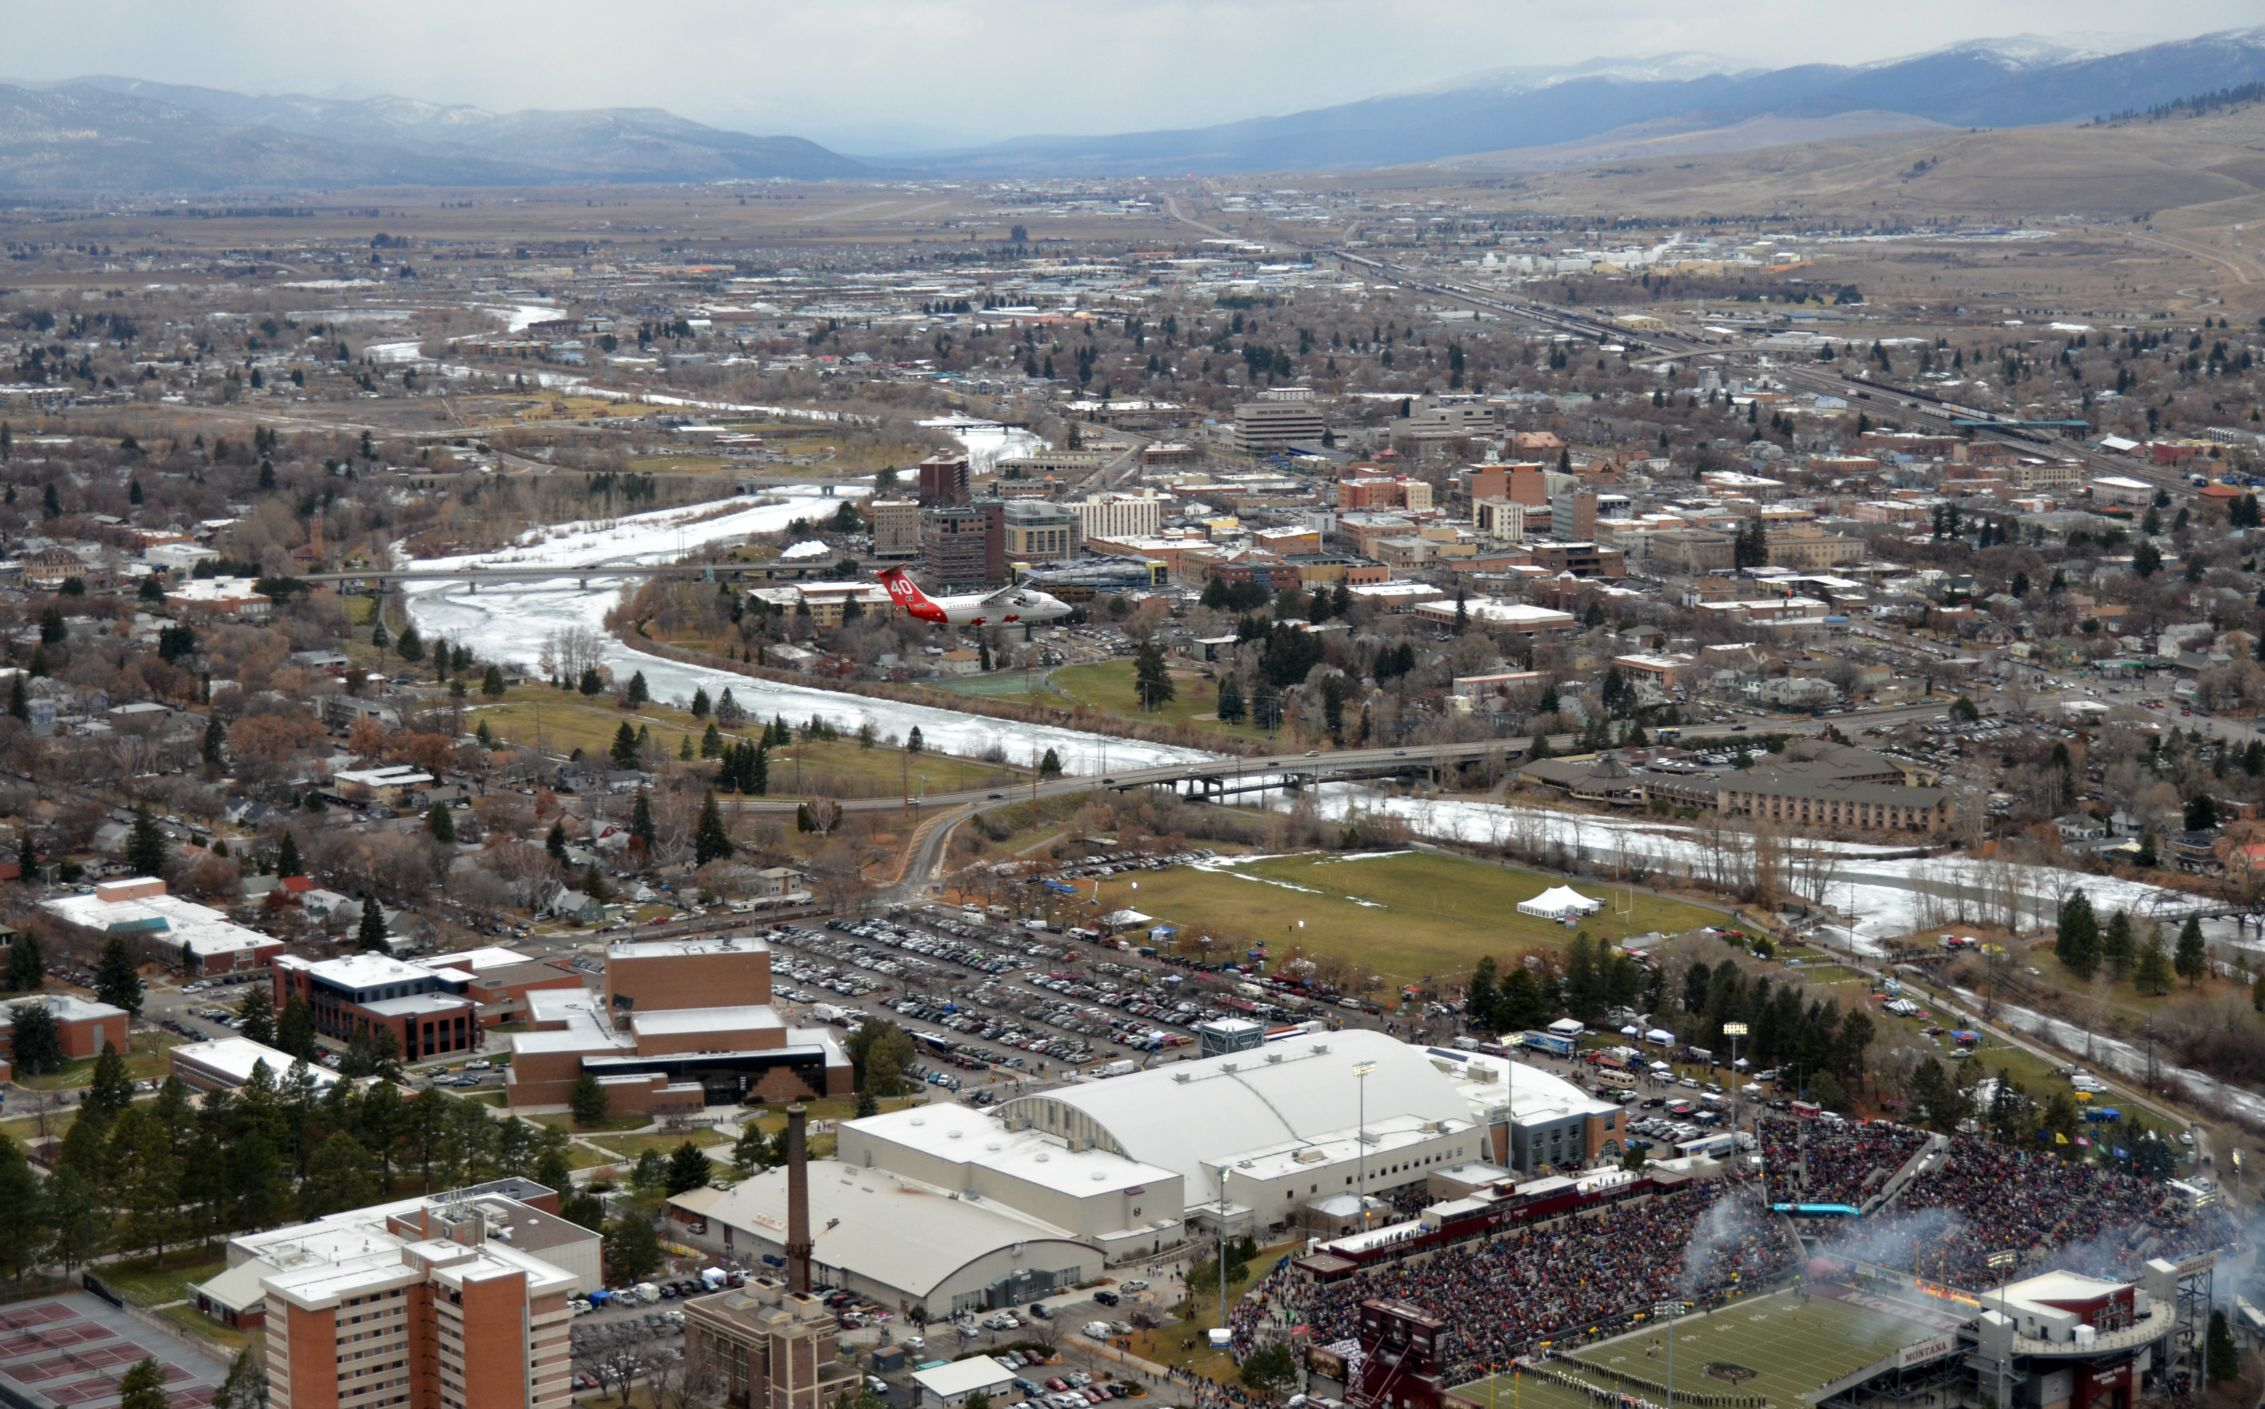 40-over-missoula-cropped